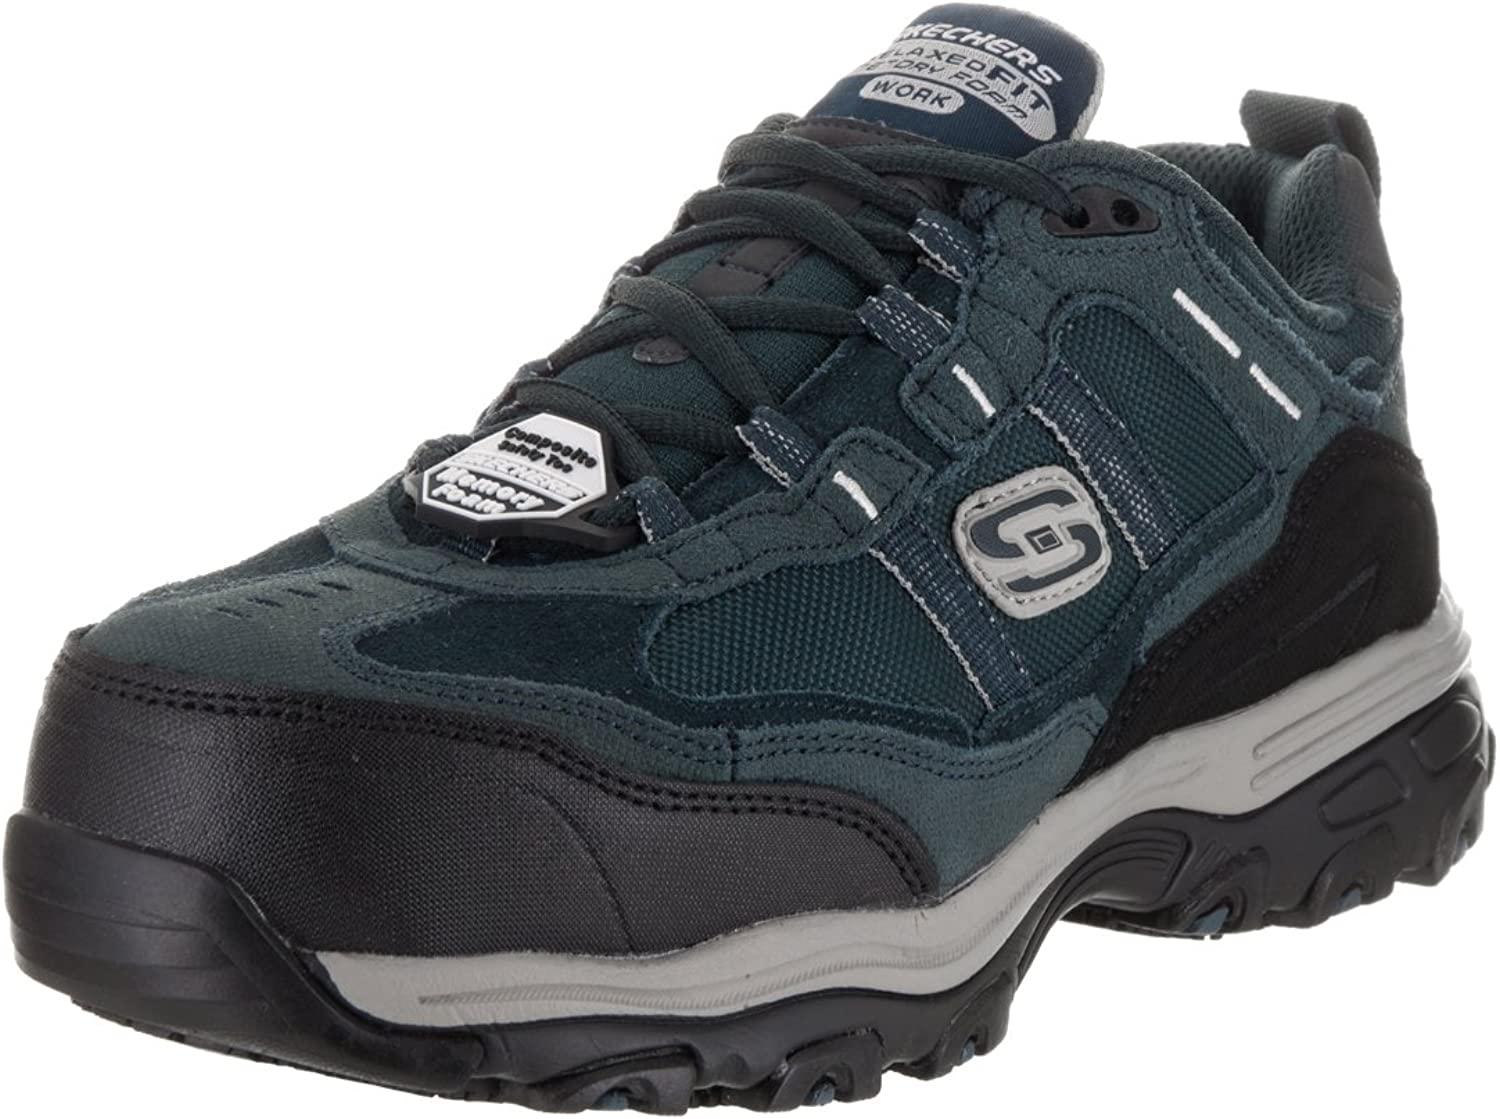 Skechers for Work Women's D'Lite Slip Resistant Toliand Composite Toe Work shoes